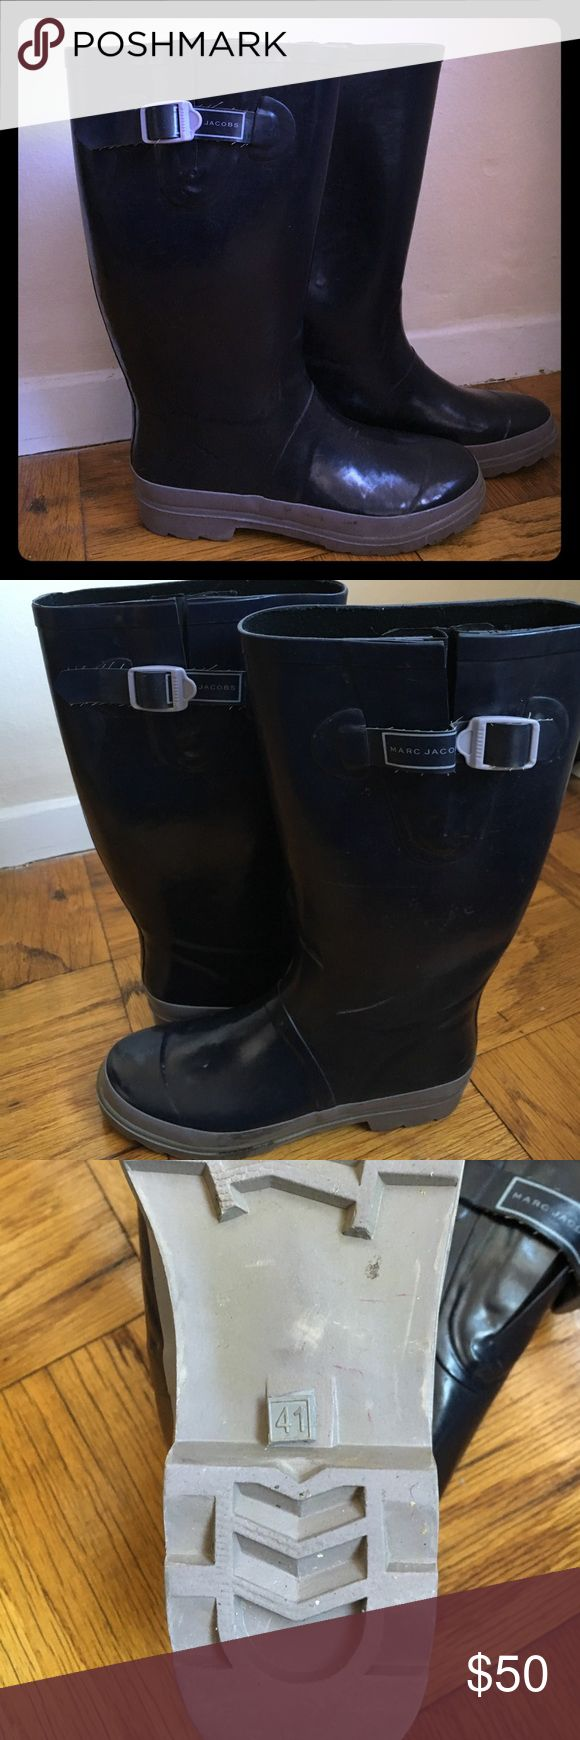 Marc Jacobs rain boots Heavy rubber, dark purple with light purple base, very durable, lightly worn Marc Jacobs Shoes Winter & Rain Boots